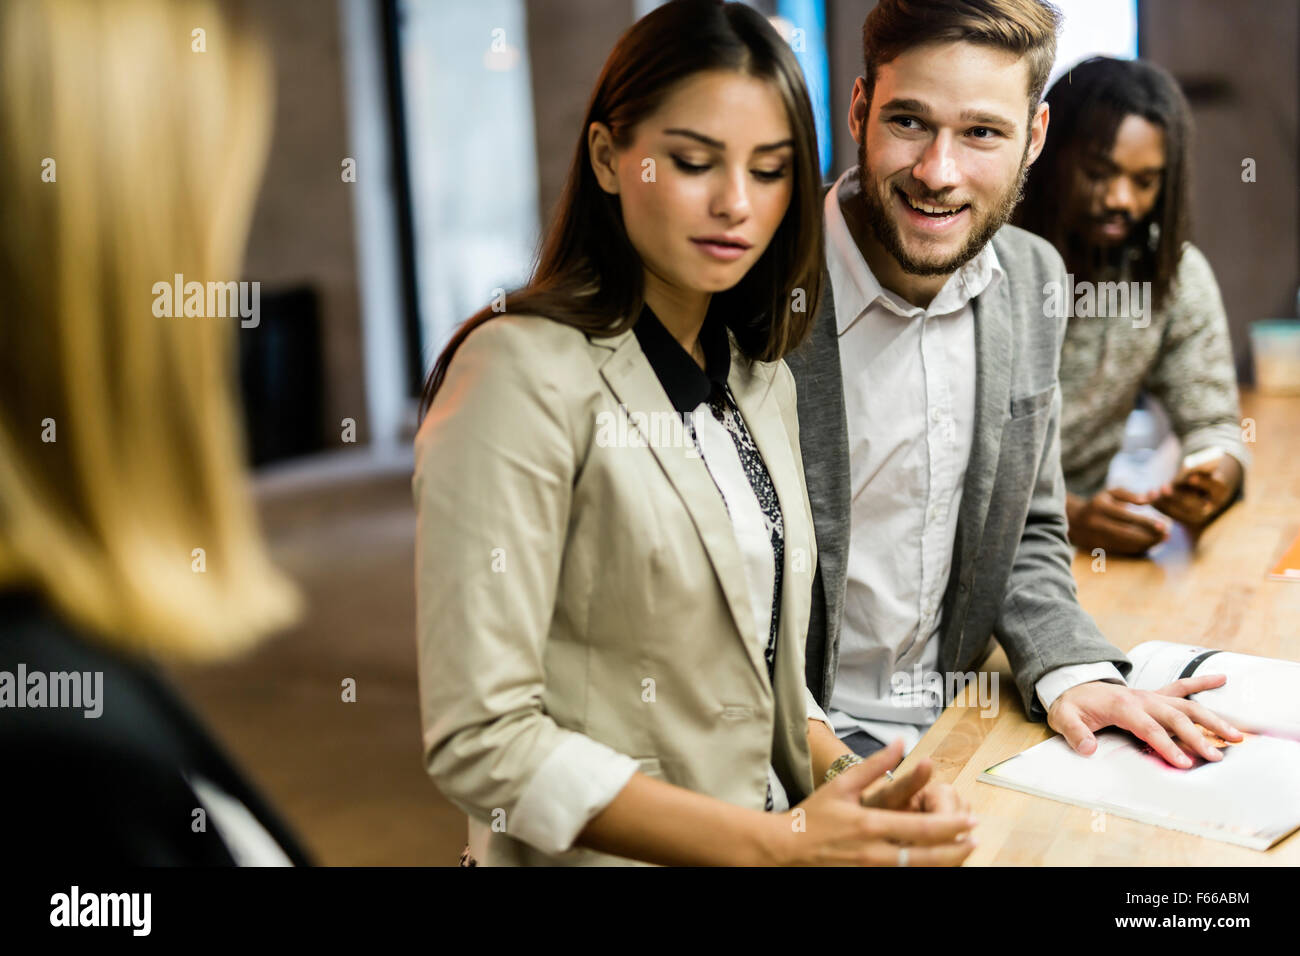 Man flirting with another woman in a bar while his girlfriend is present - Stock Image